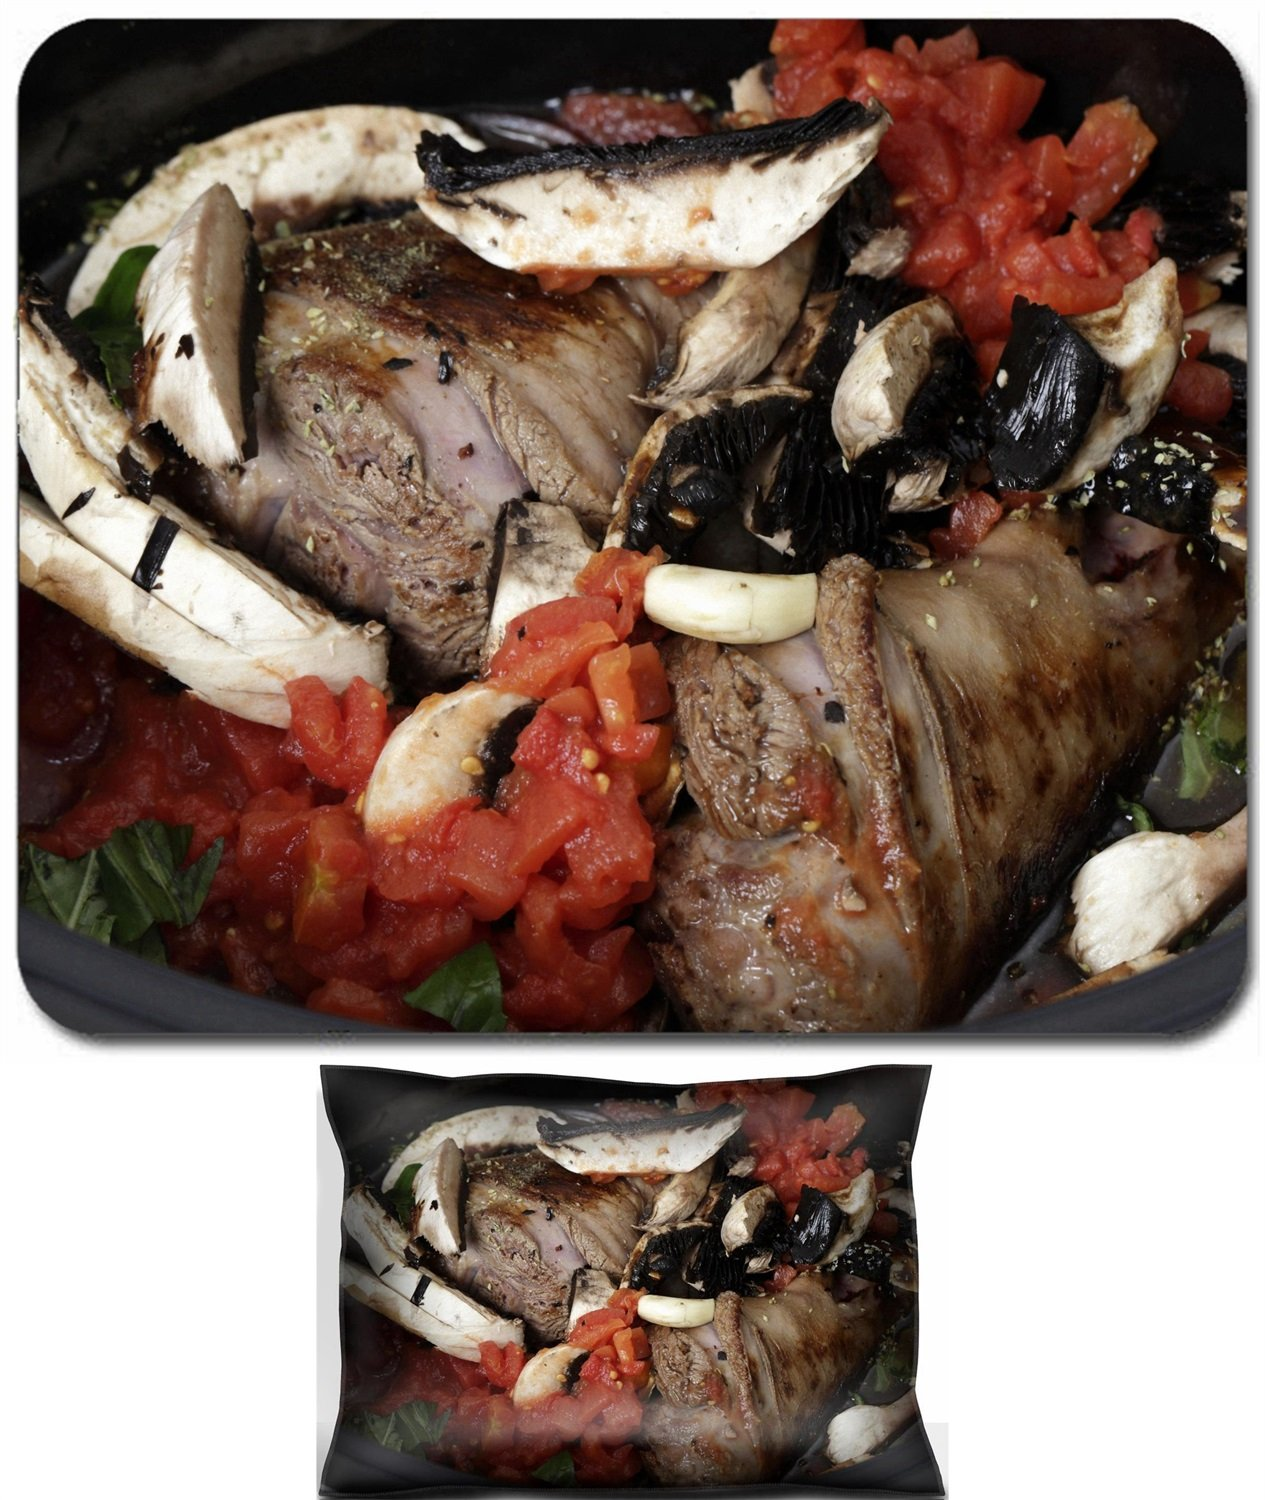 Luxlady Mouse Wrist Rest and Small Mousepad Set, 2pc Wrist Support design IMAGE: 25865932 Two lamb shanks lightly browned ready for cooking in a slow cooker or crockpot with mushrooms tomatoes basil r